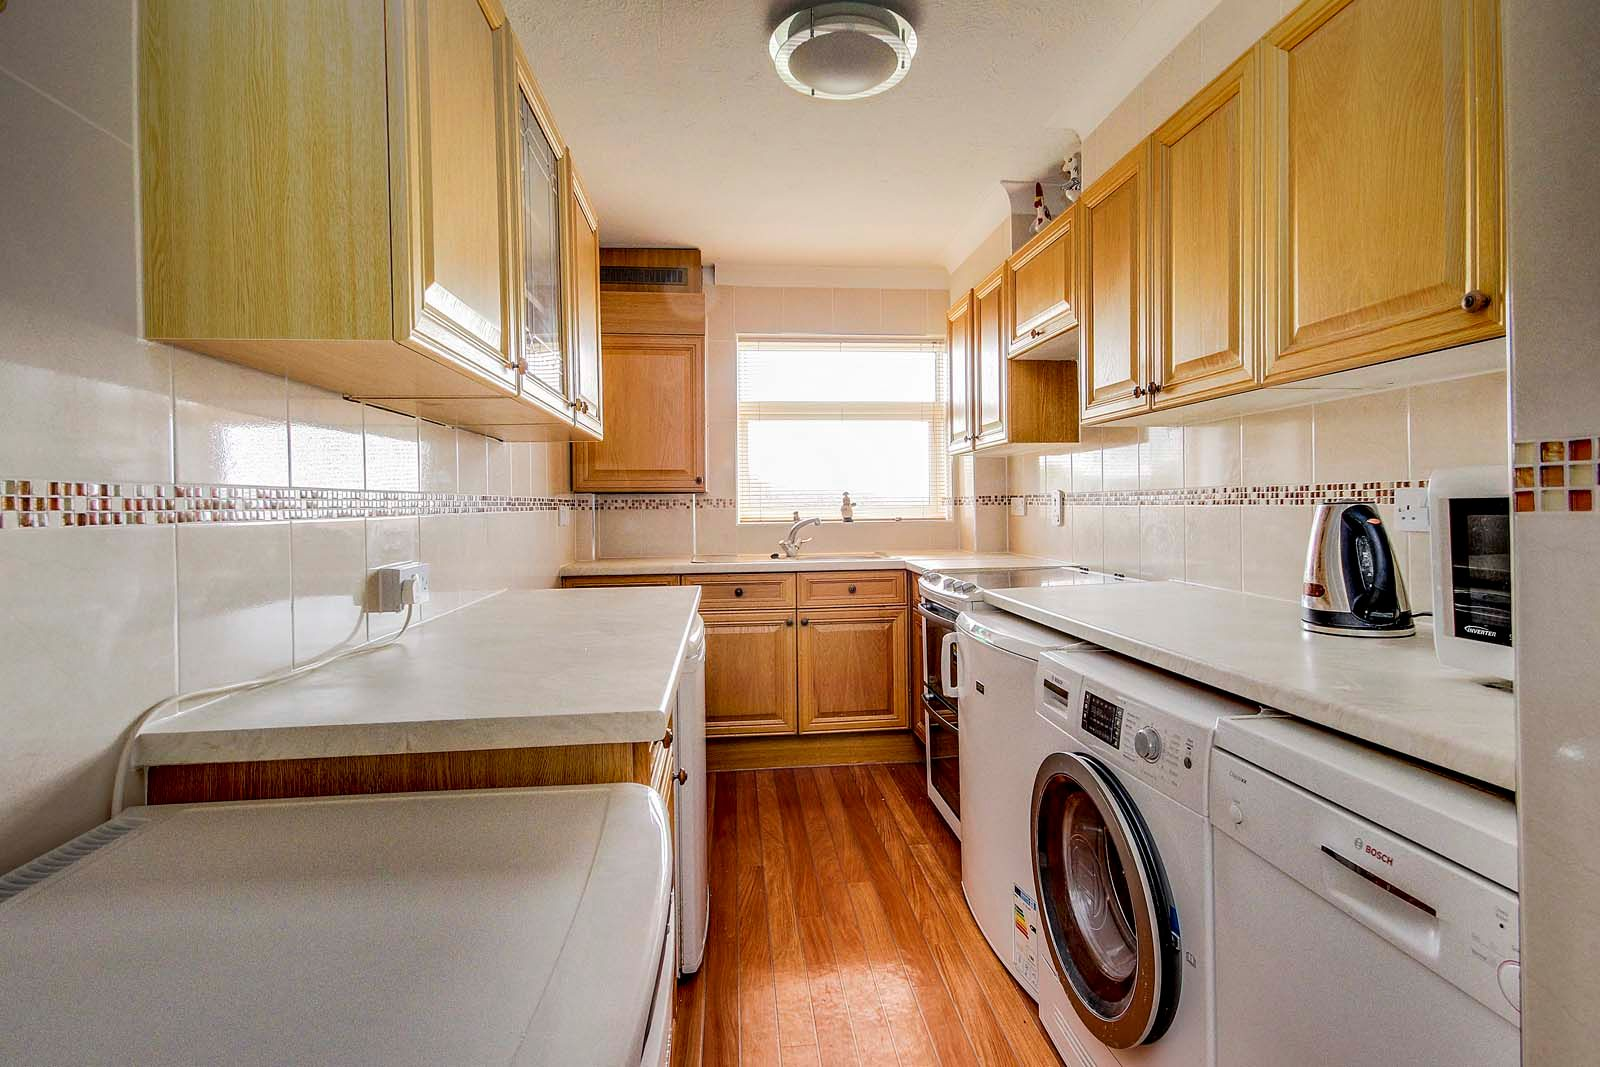 2 bed  for sale in Marama Gardens  - Property Image 7